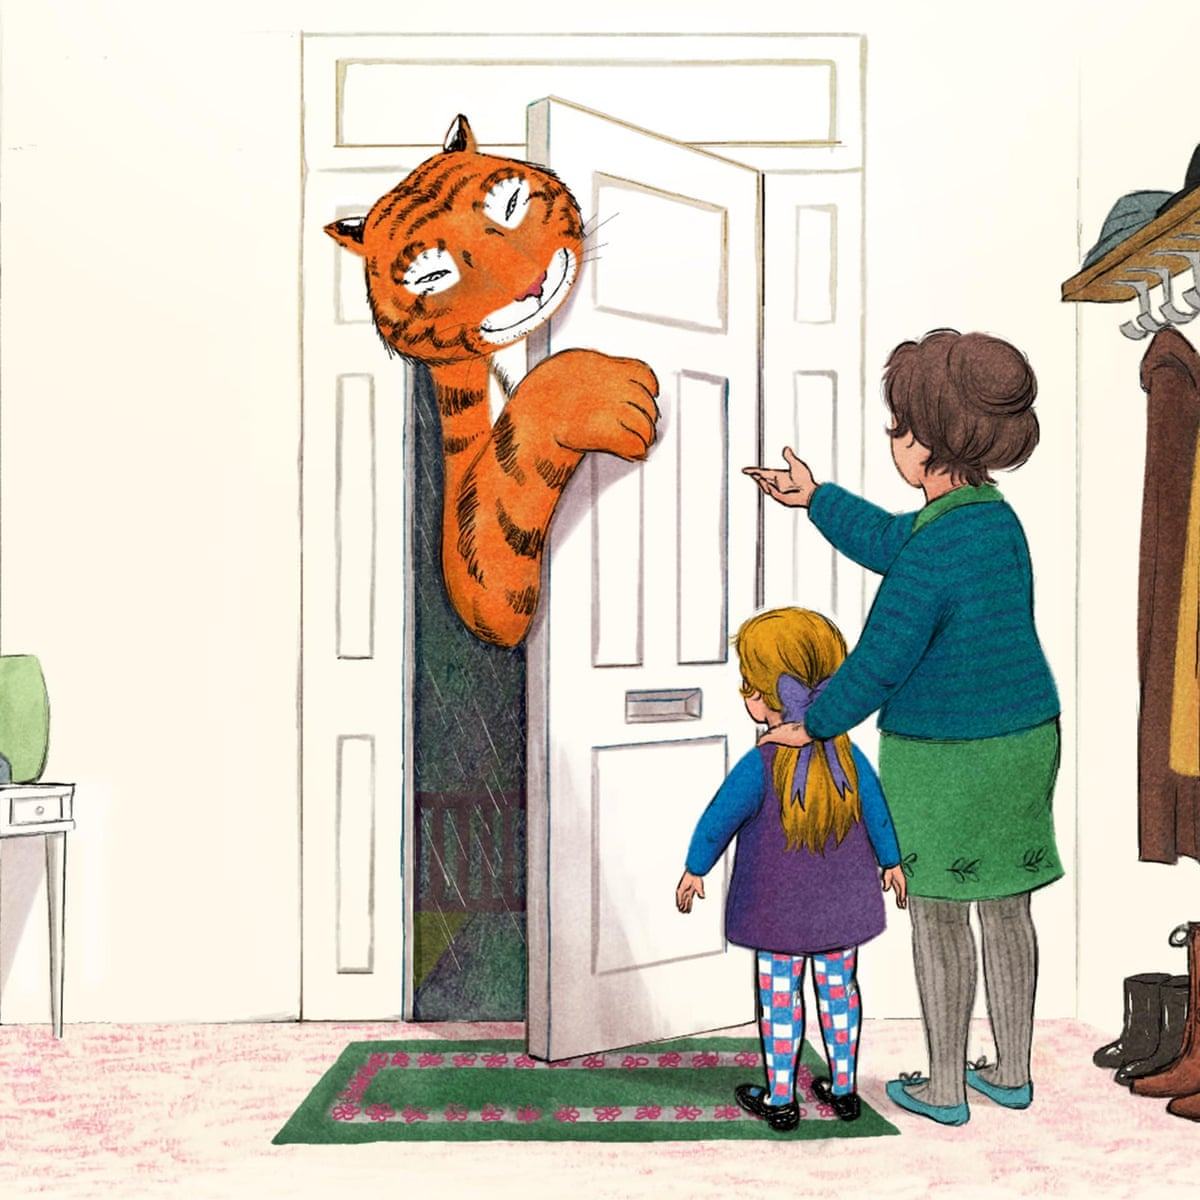 The Tiger Who Came To Tv Animated Classic Tops Children S Festive Listings Animation On Tv The Guardian